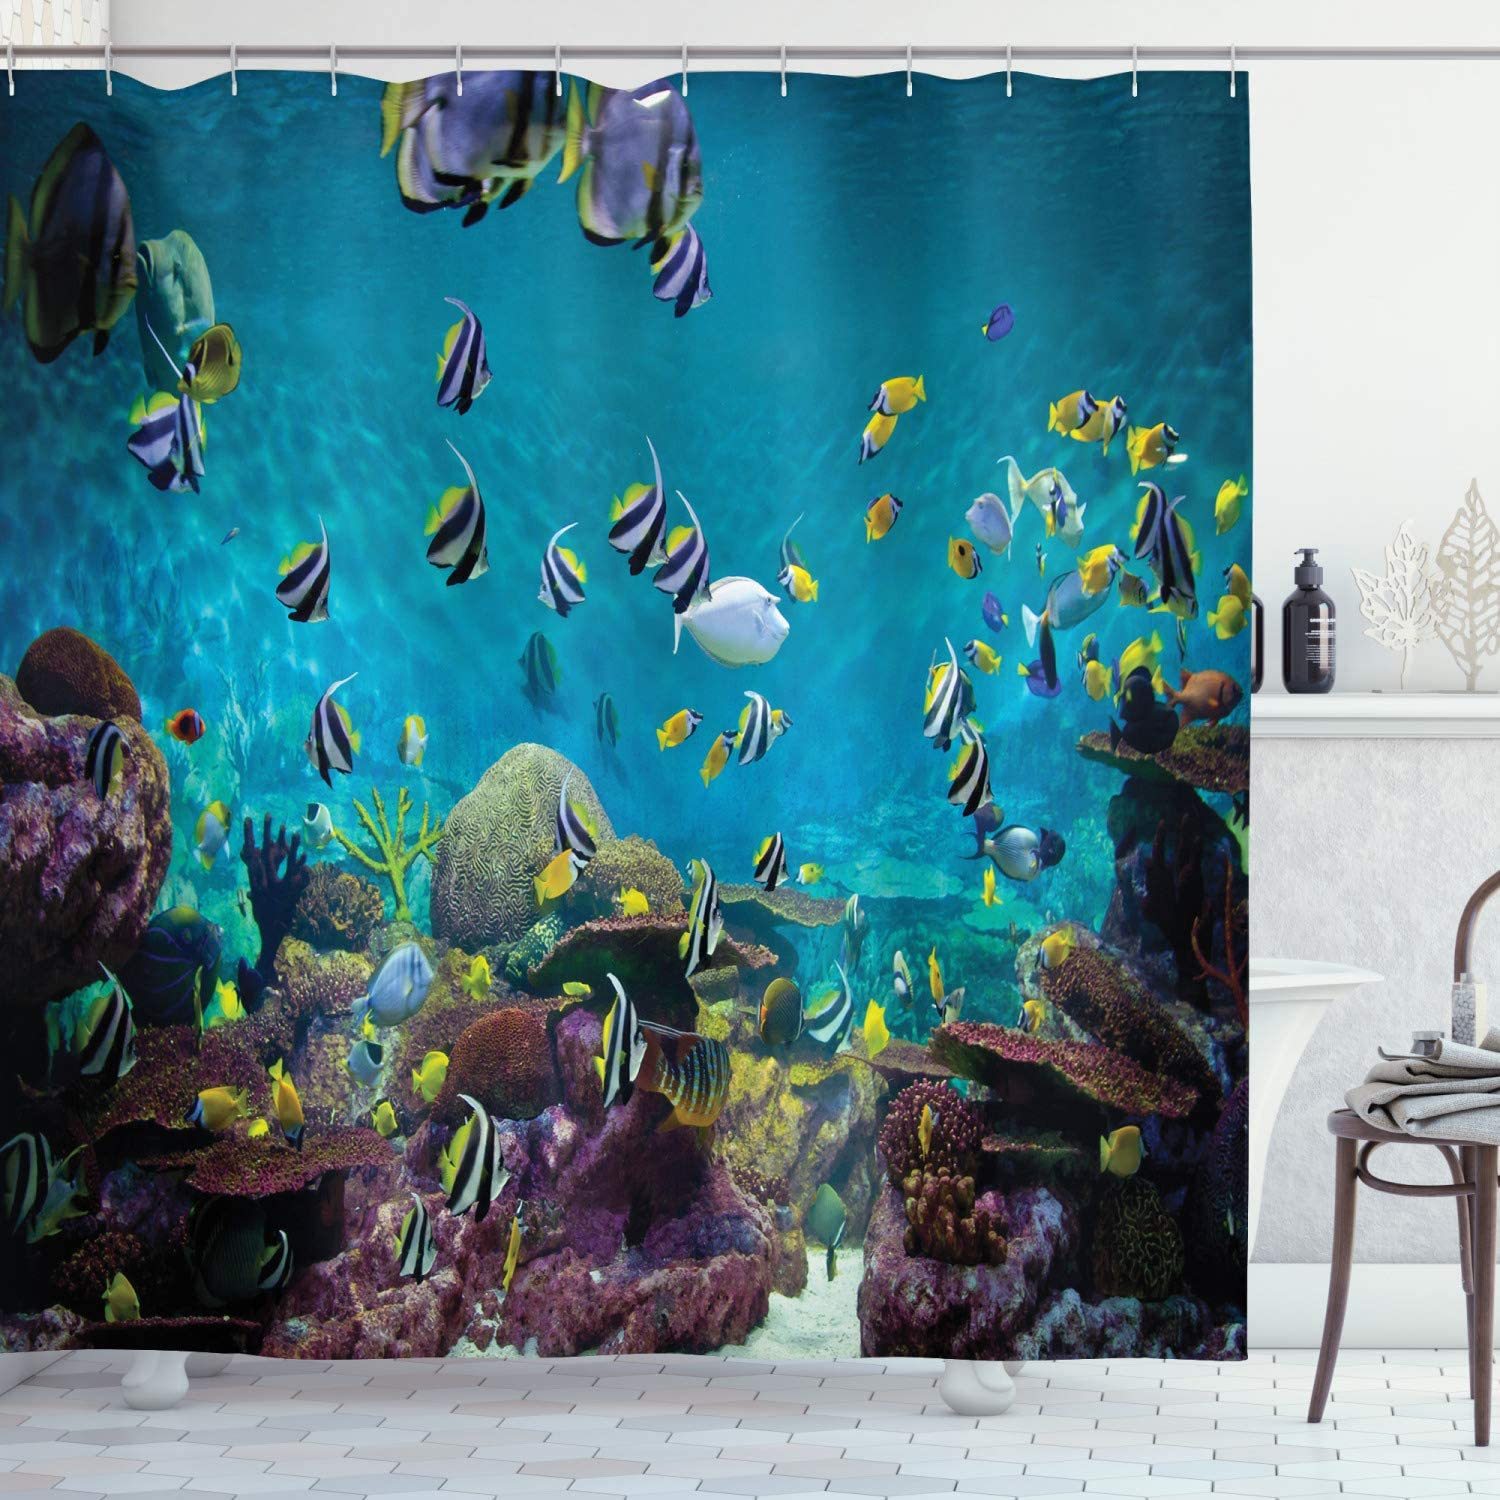 Ambesonne Ocean Shower Curtain, Untouched Wild Underwater Aquatic World Corals Exotic Fishes Seascape, Cloth Fabric Bathroom Decor Set with Hooks, 75